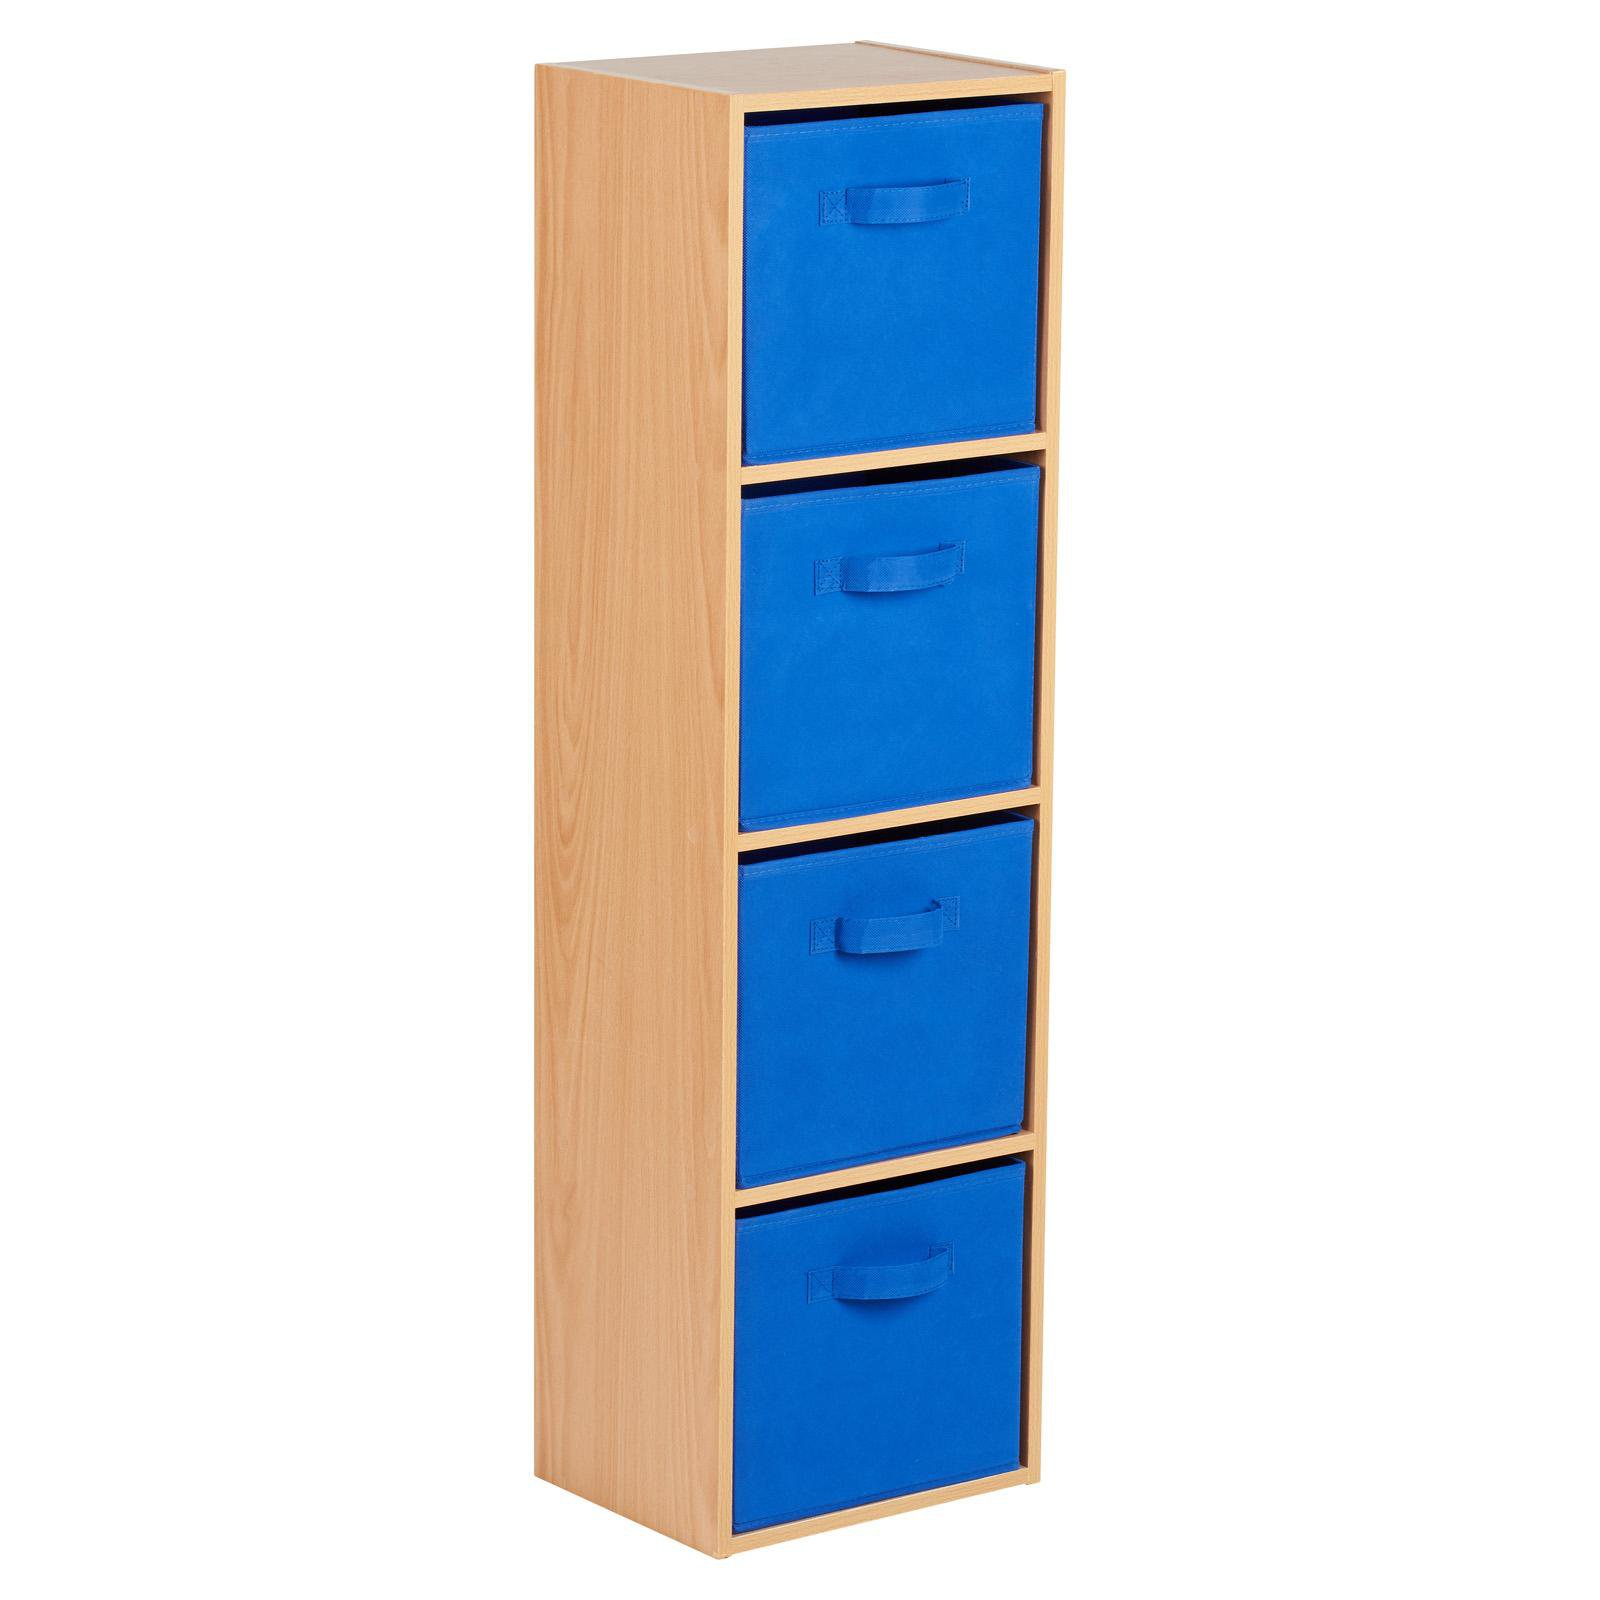 image-Hartleys Beech 4 Tier Cube Storage Unit & 4 Handled Box Drawers - Blue